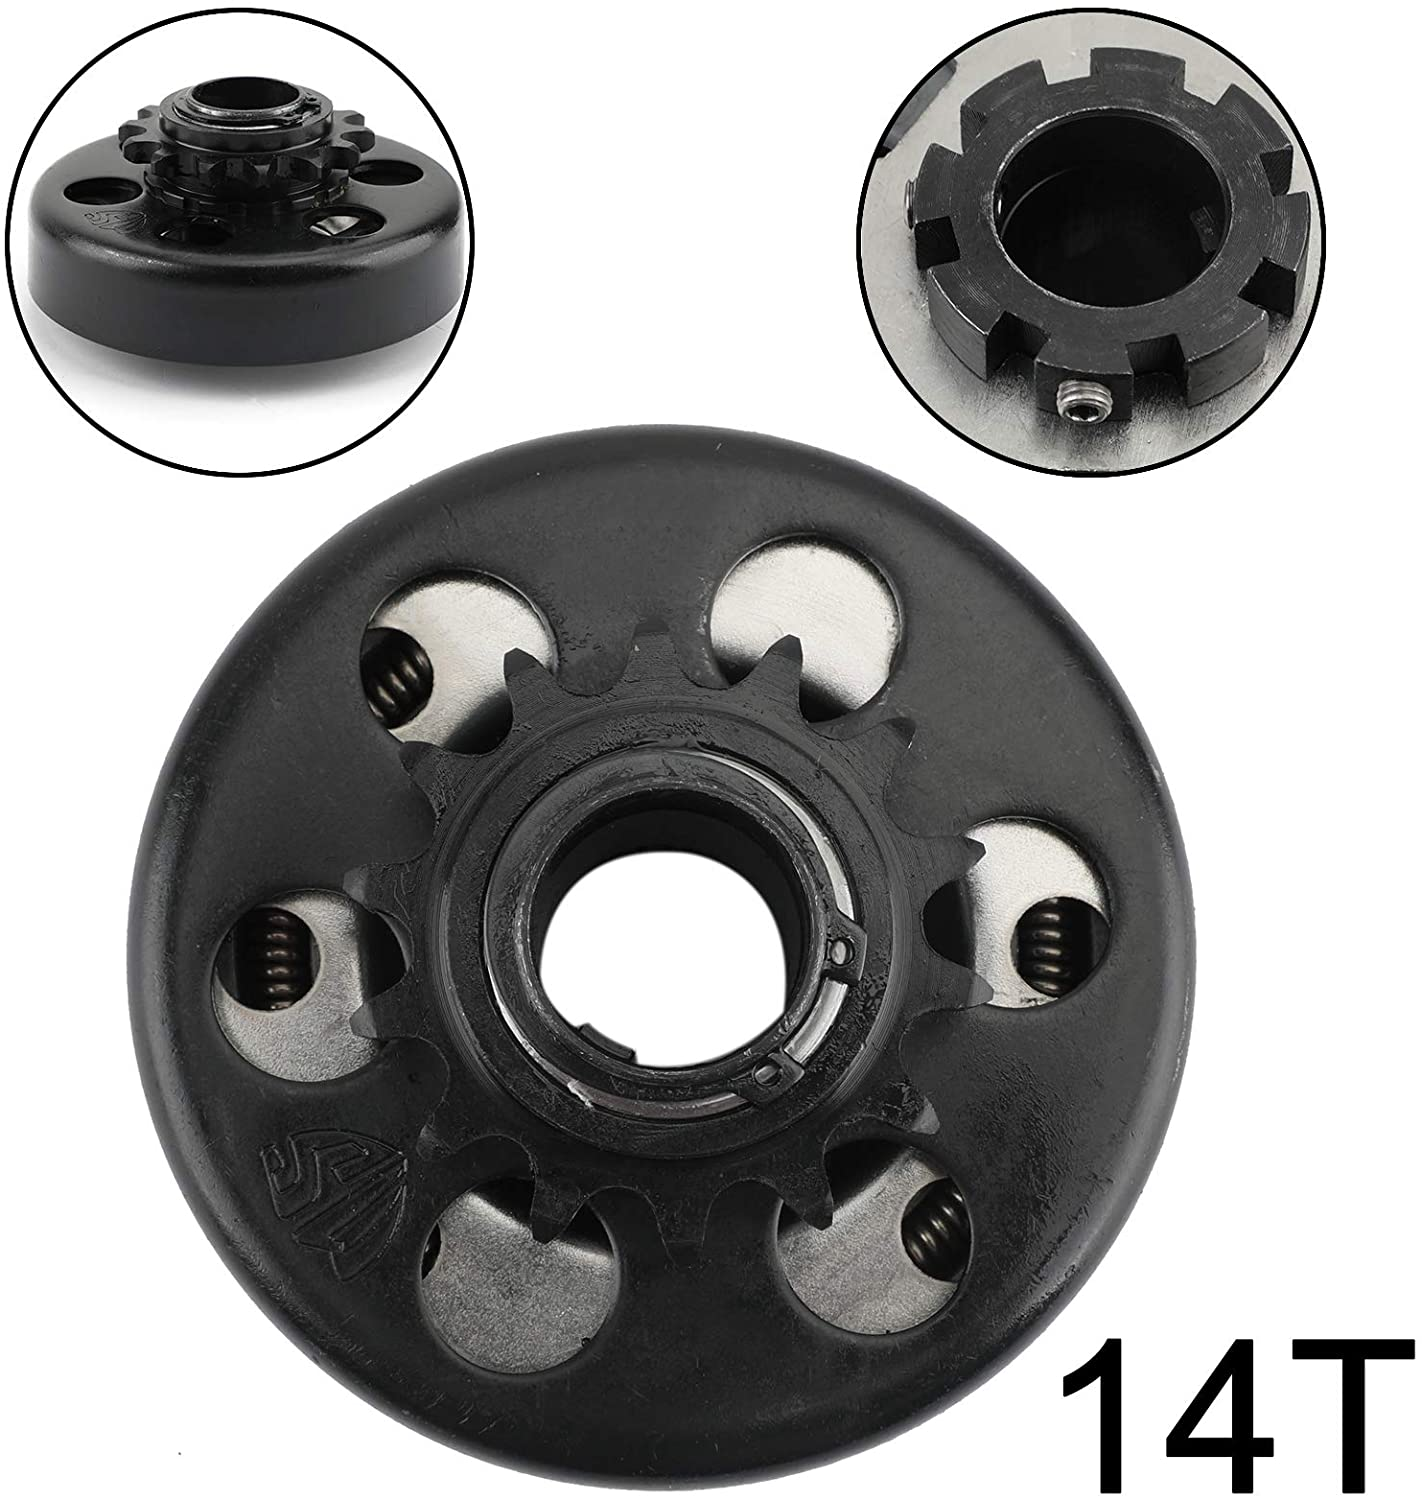 CHENDGE2 New 13HP Go Kart Centrifugal Clutch 1inch Bore 14T 14 Tooth For 40 41 420 Chain